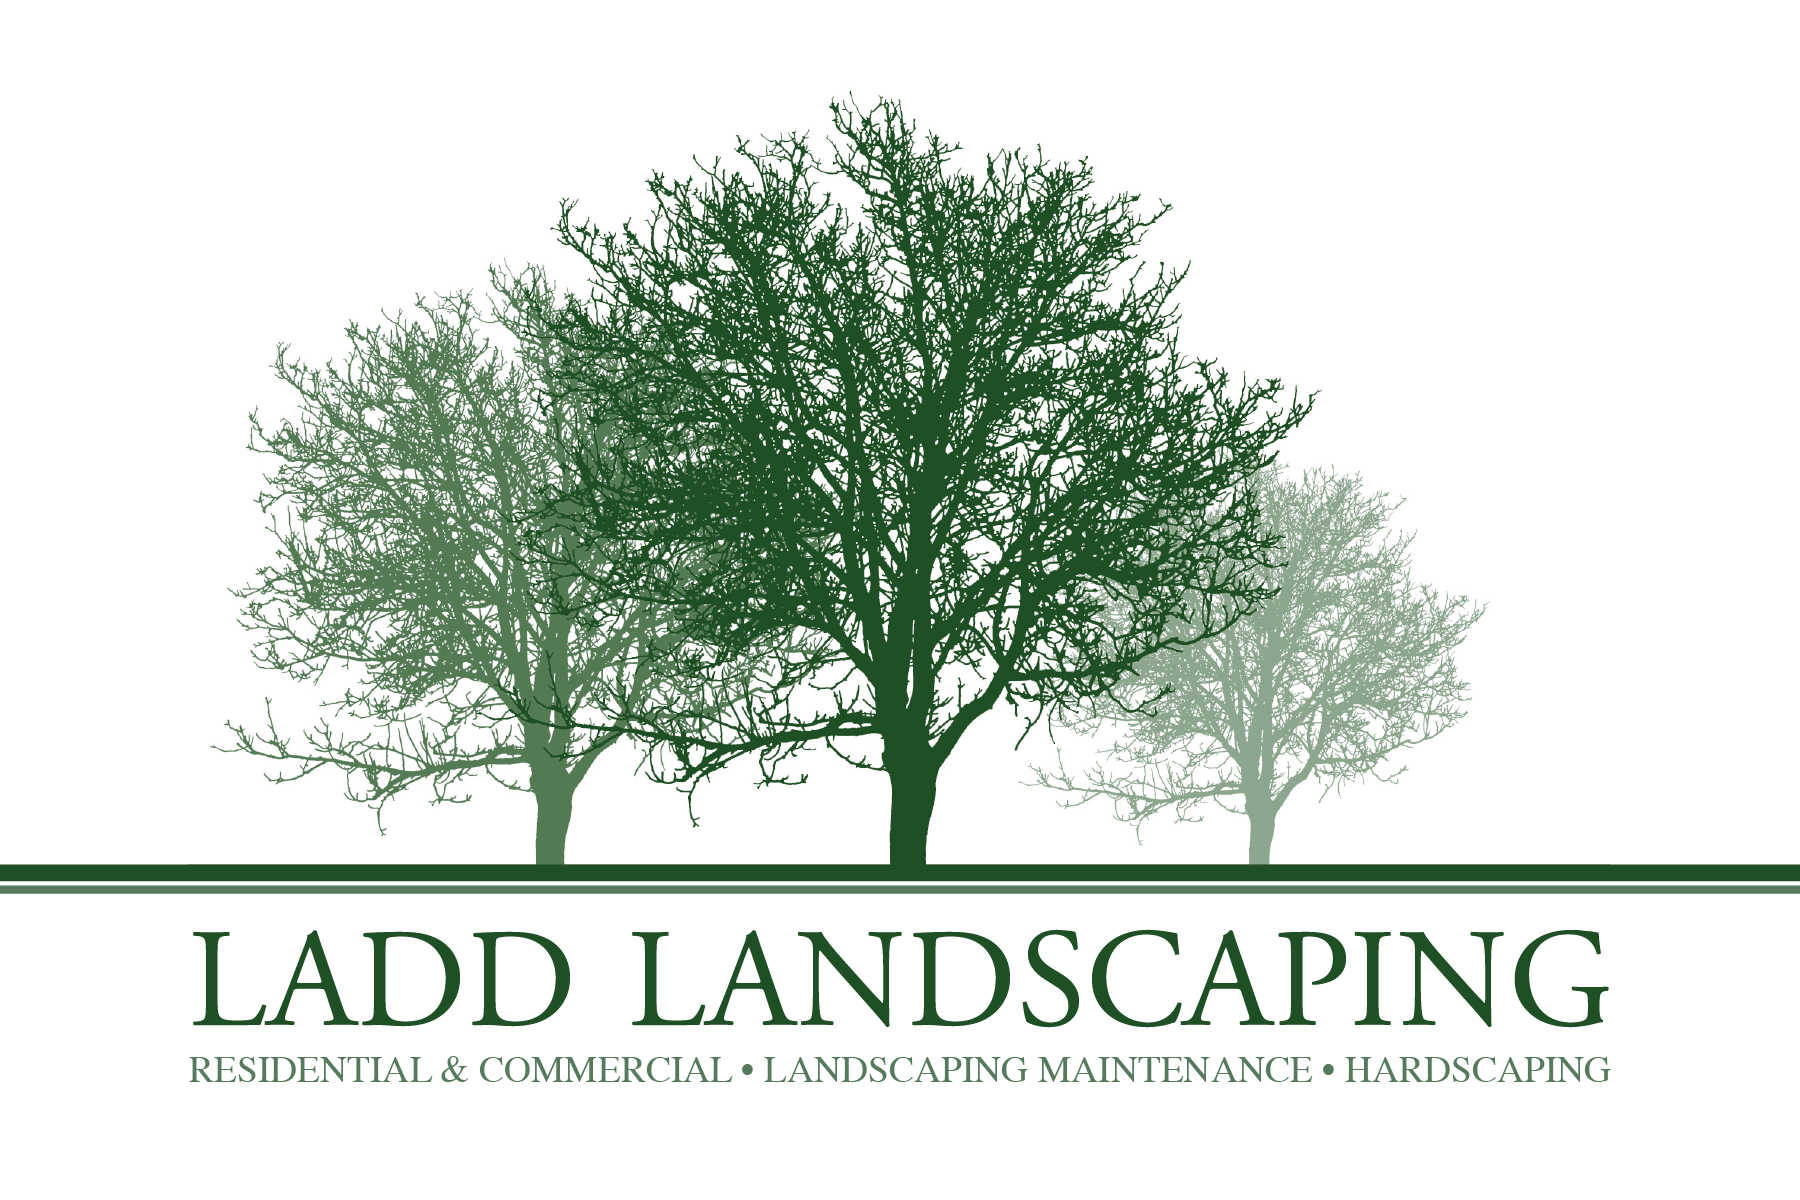 Landscaping logos Wallpaper